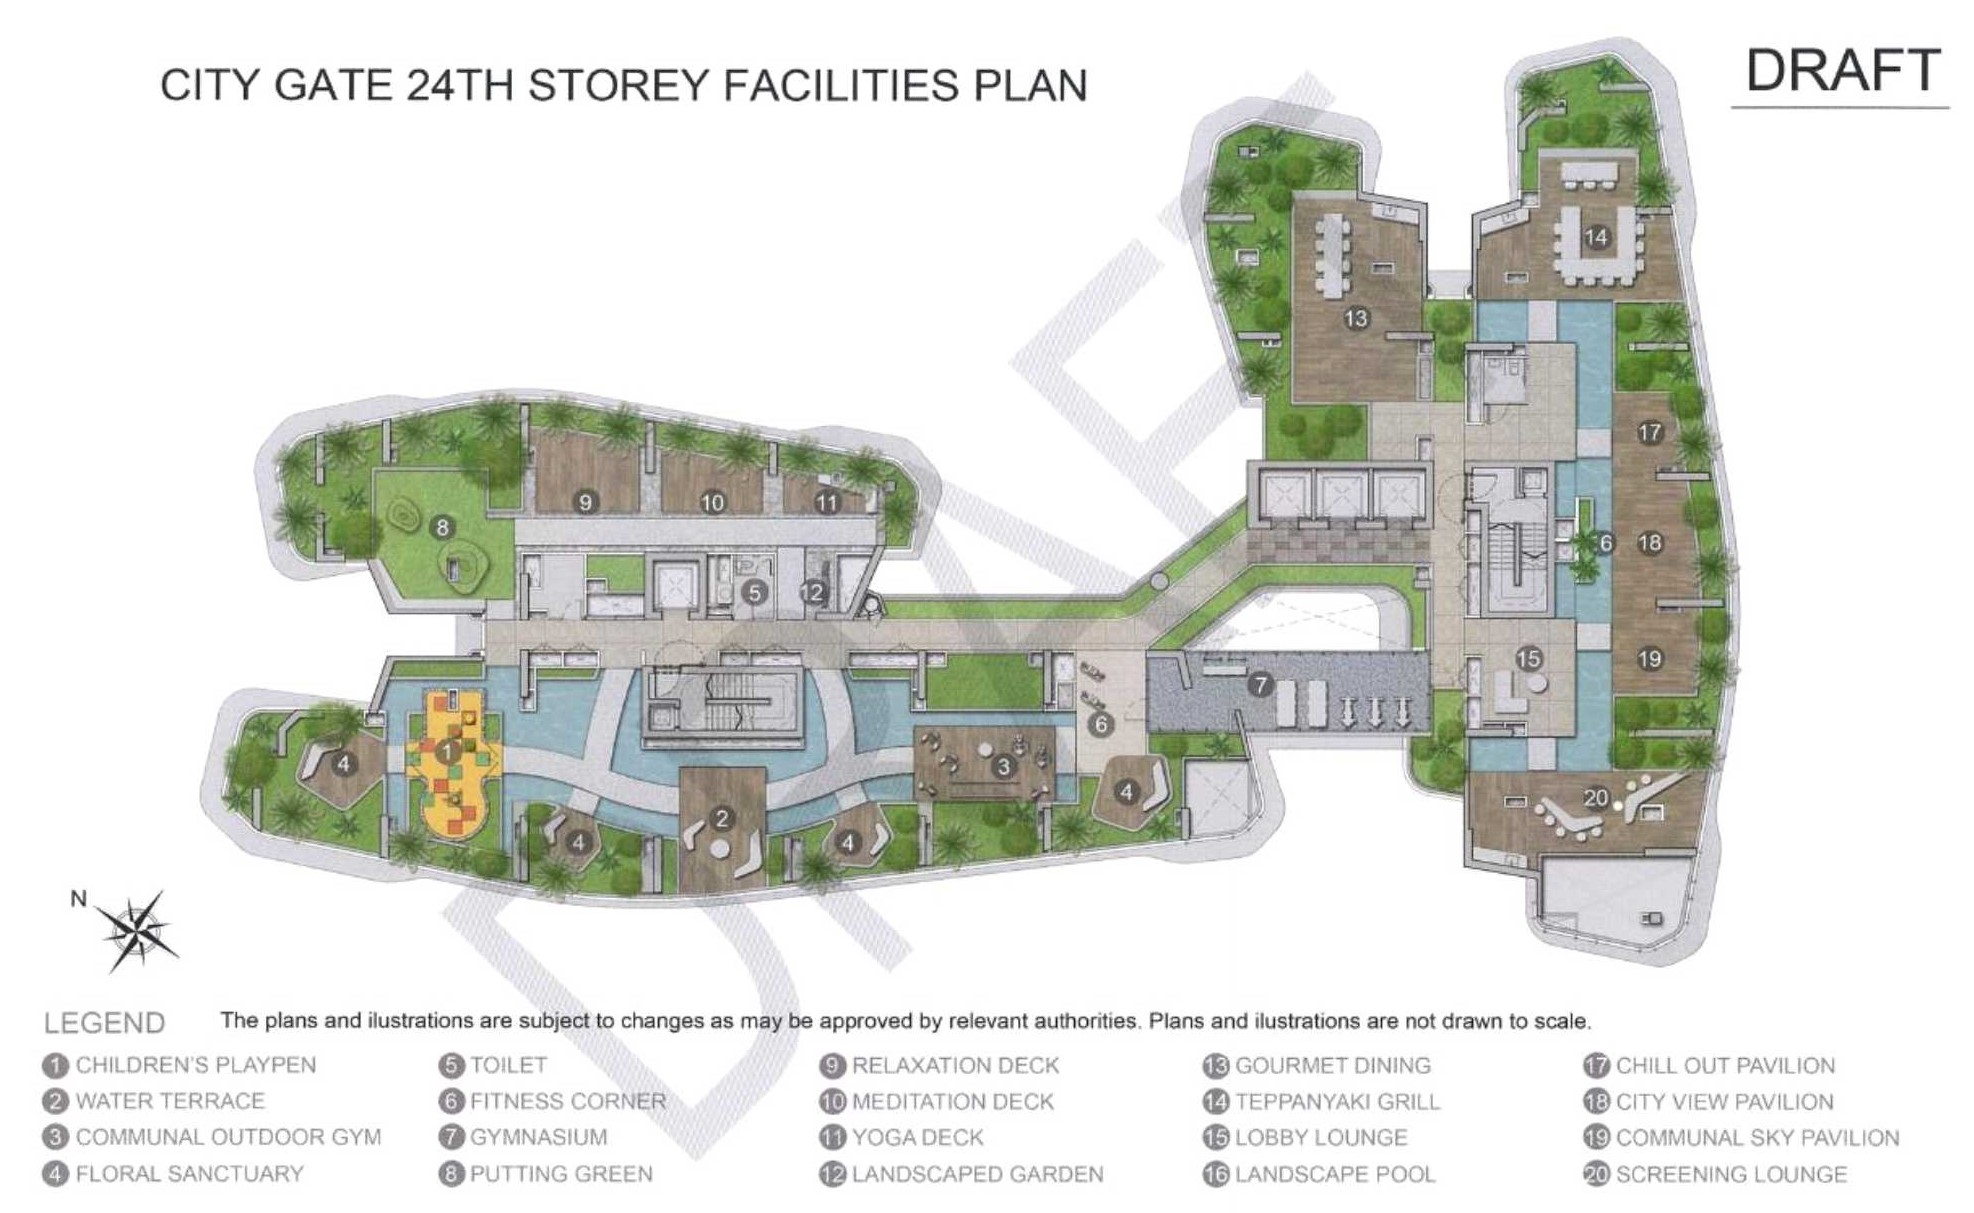 City Gate Facility Plan - 24th Stoery